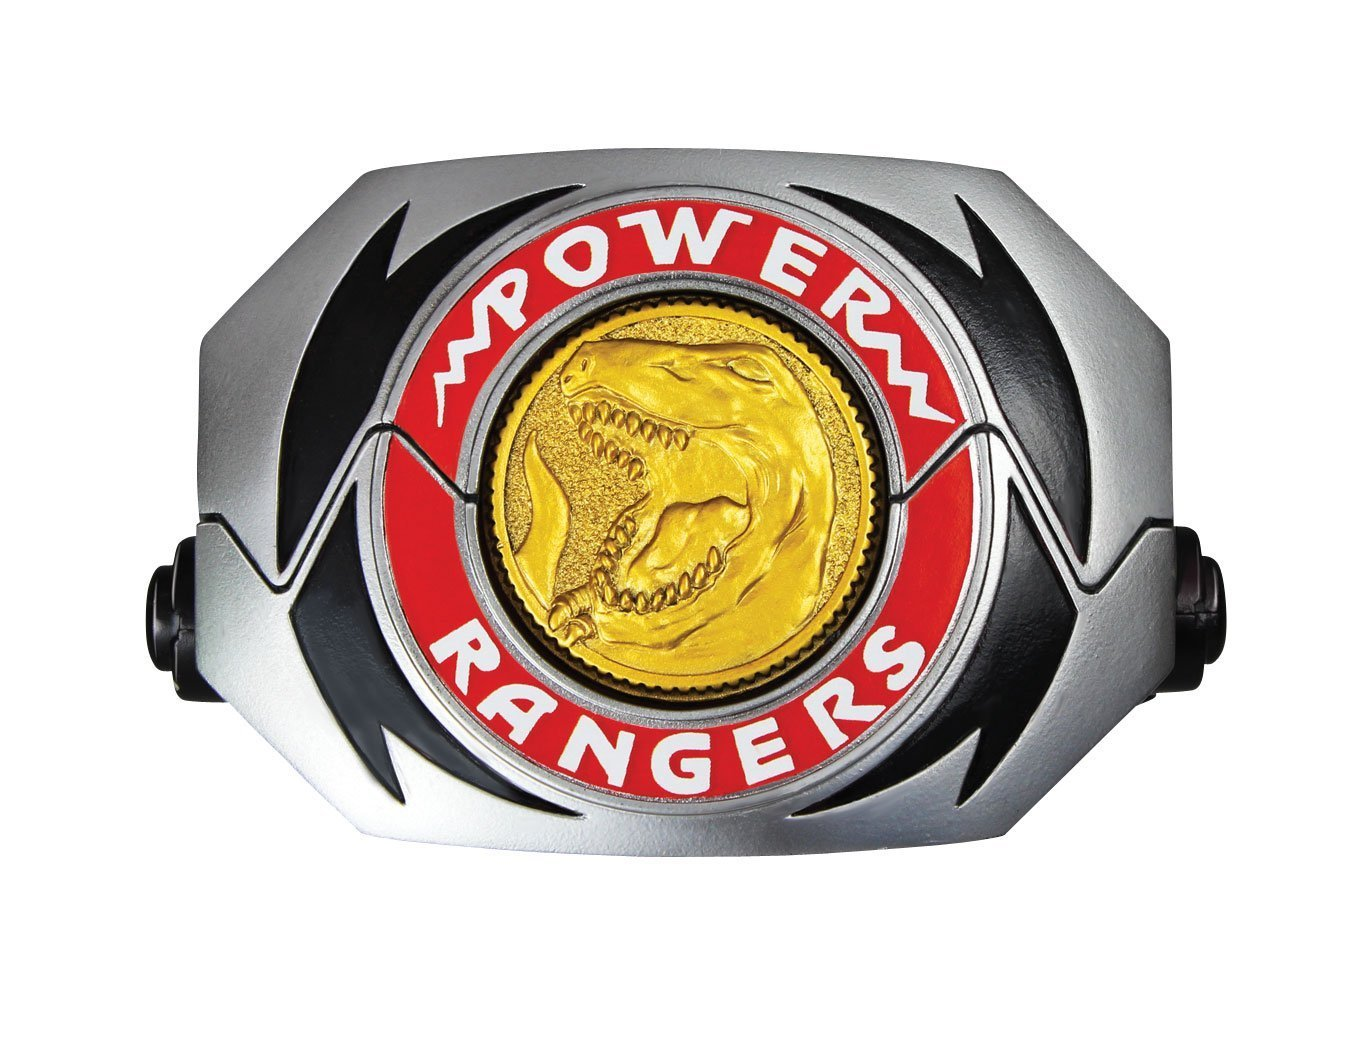 Power Rangers Mighty Morphin Legacy Edition Morpher Action Figure [並行輸入品] B016XS3C20